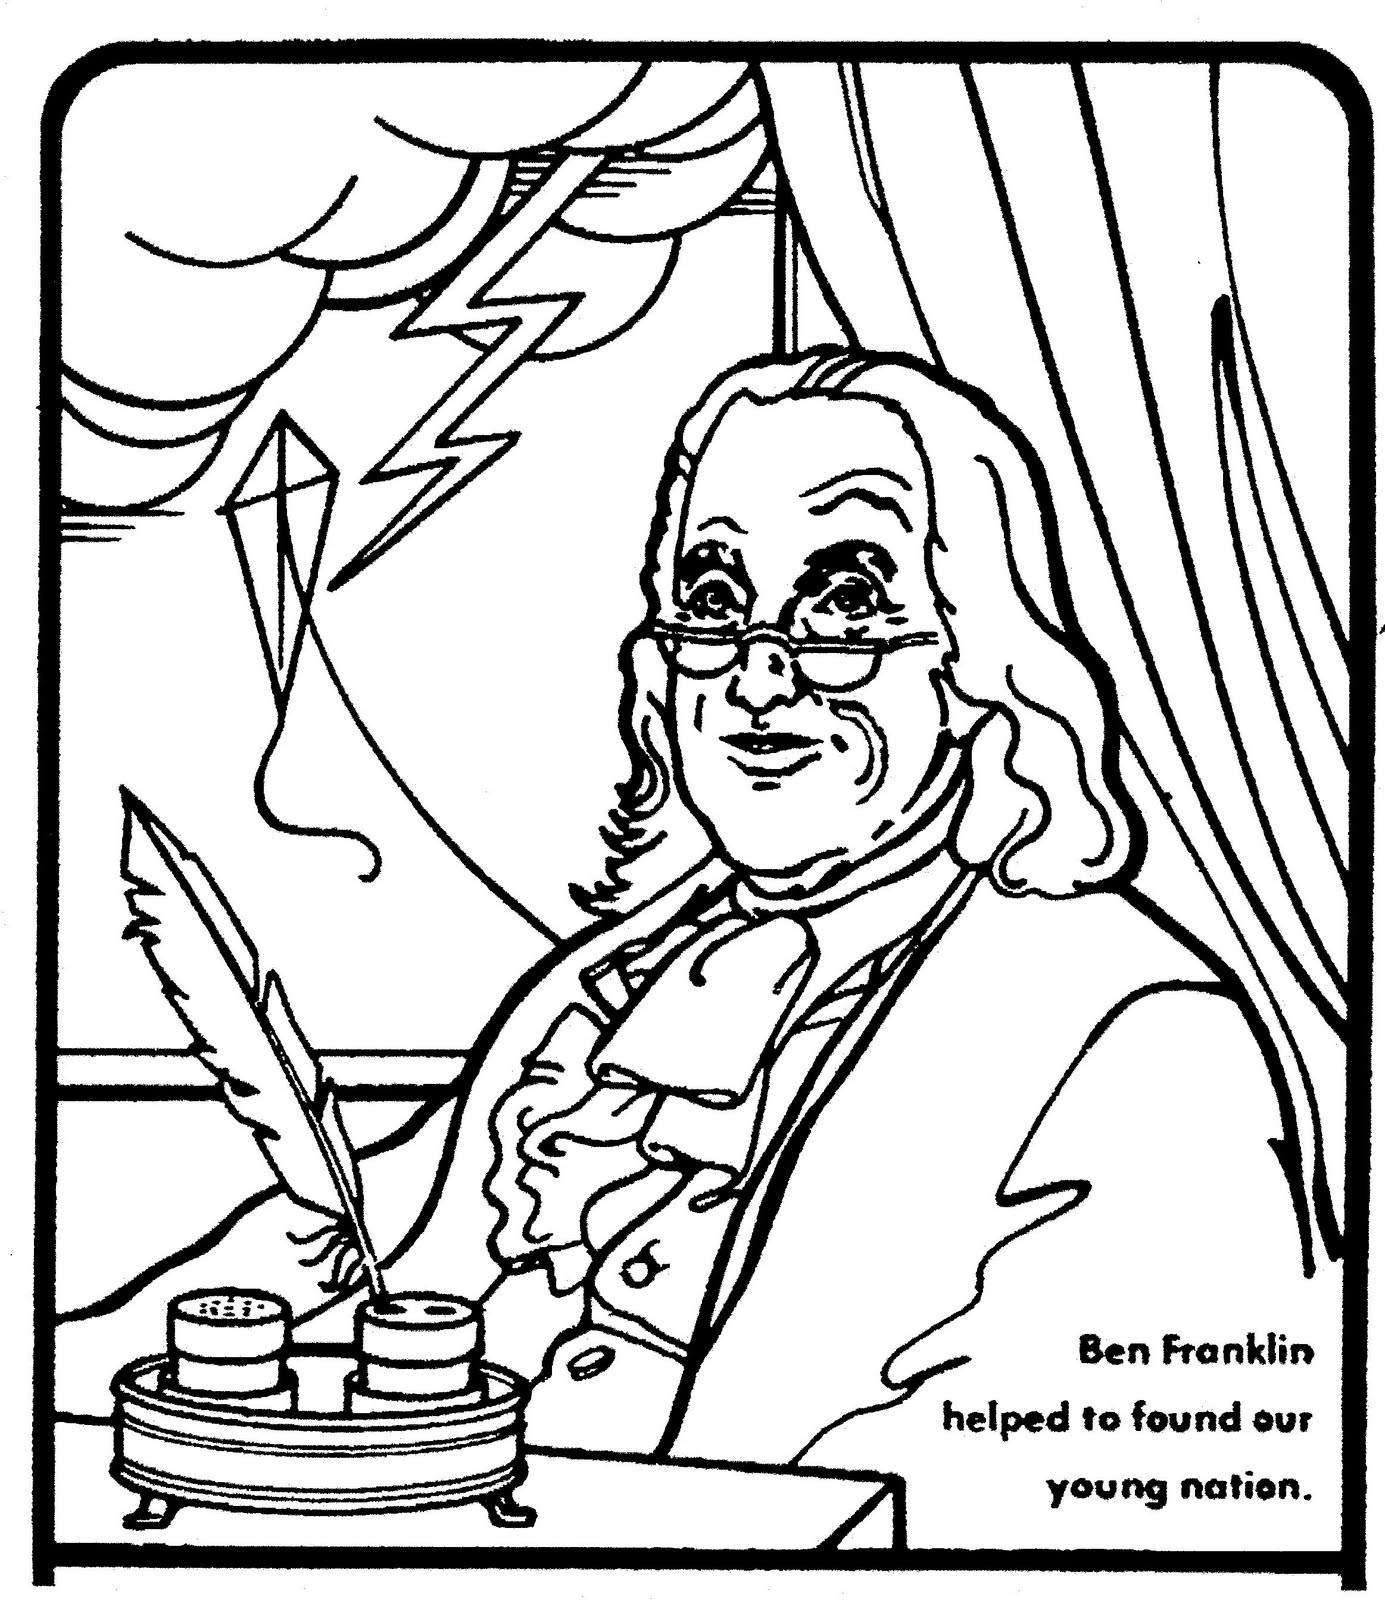 coloring pictures of independence day july 4th independence day coloring pages pictures independence coloring of day